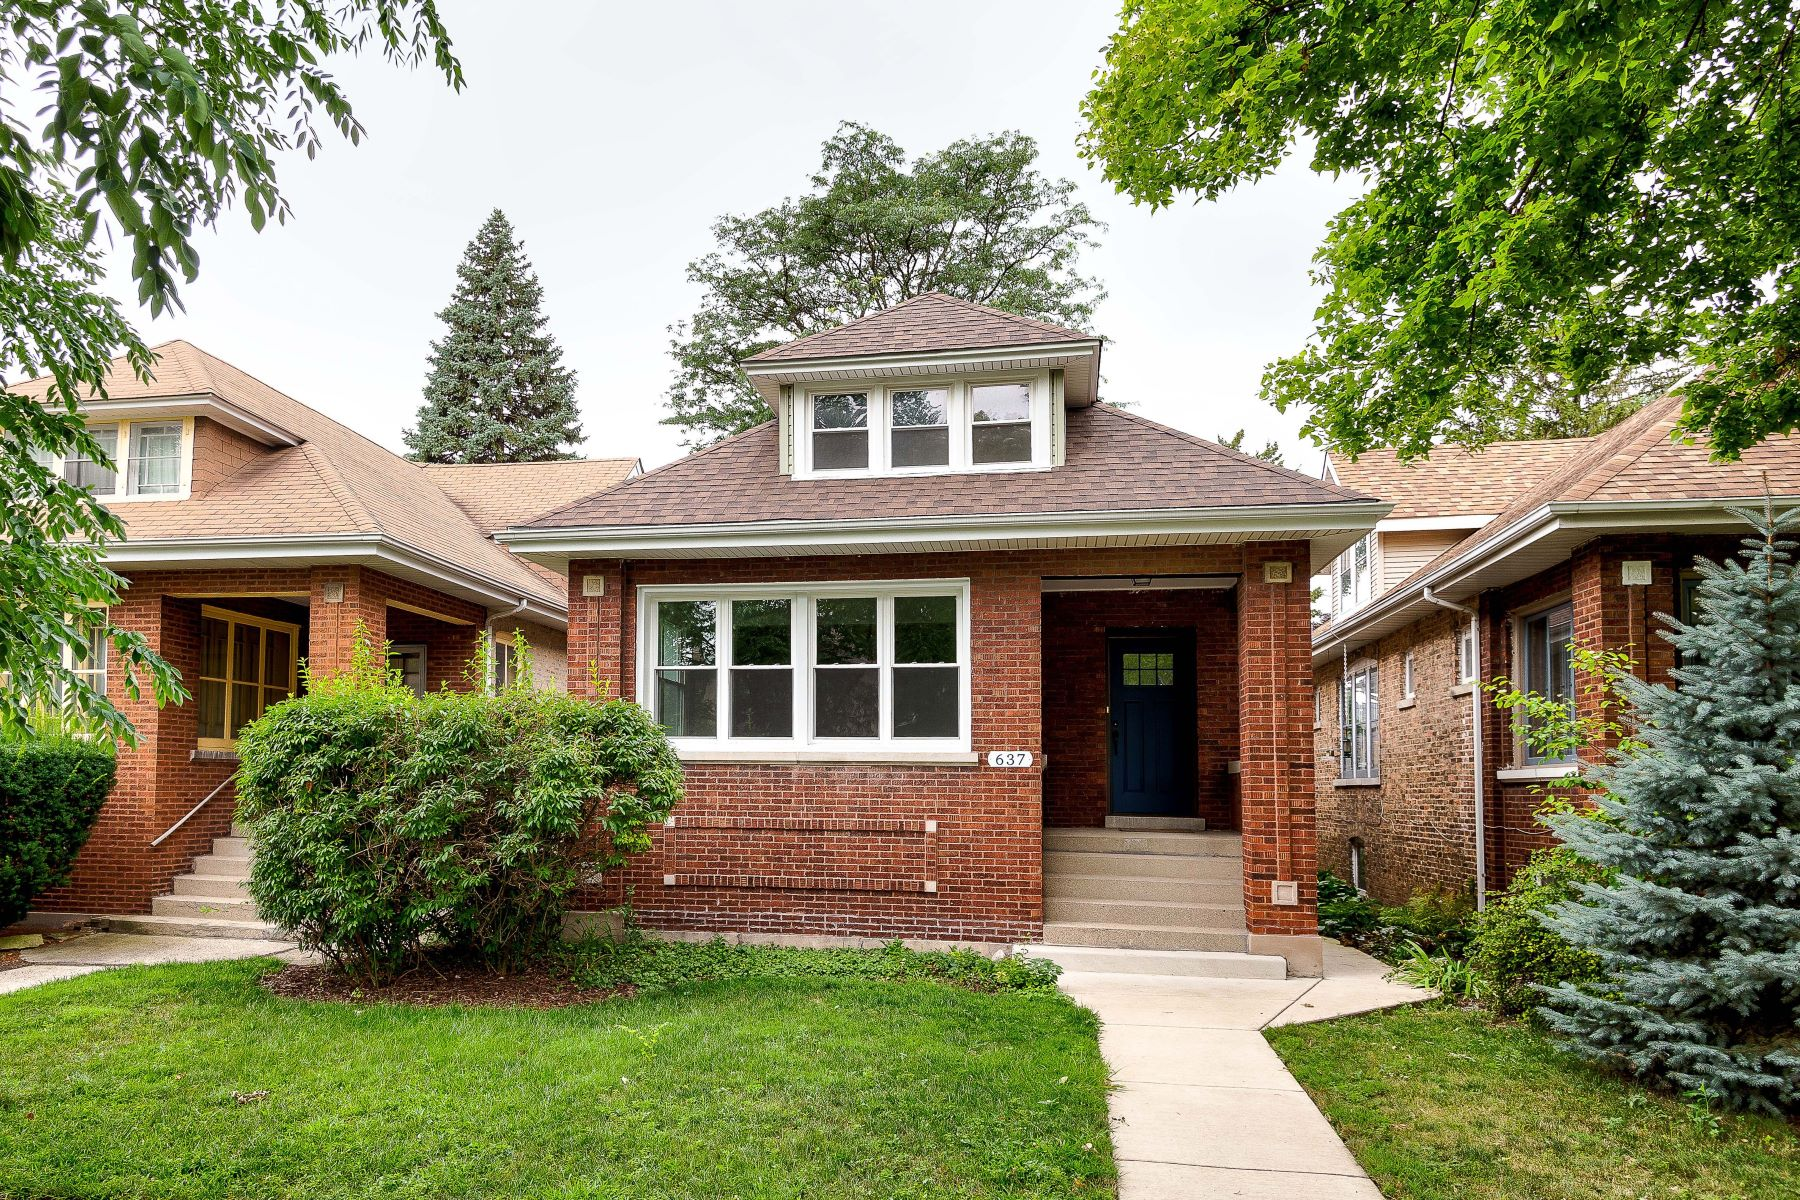 Single Family Homes for Active at Charming Oak Park Bungalow 637 Clarence Avenue Oak Park, Illinois 60304 United States